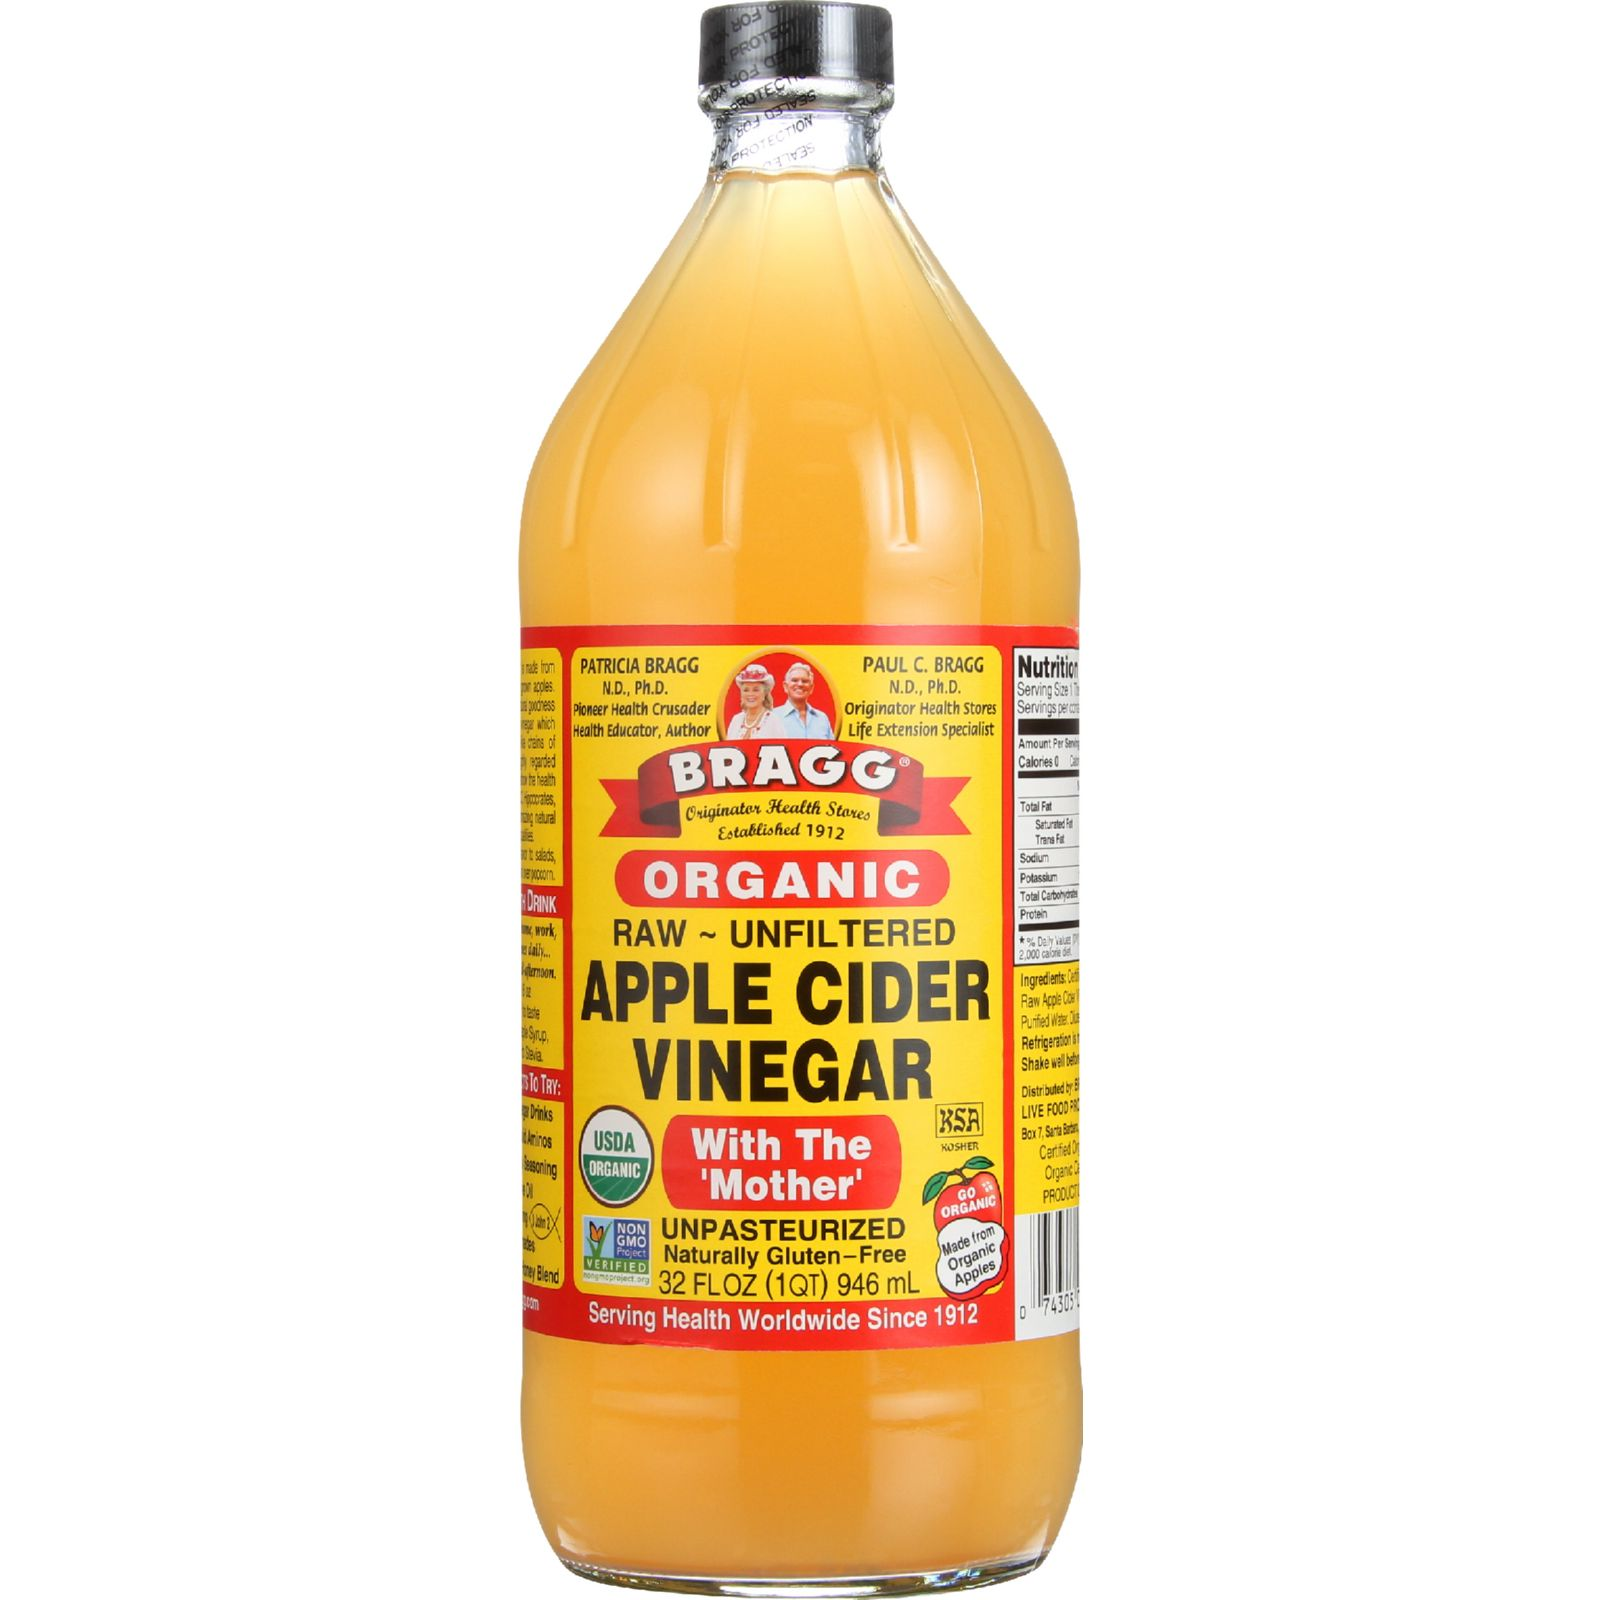 Bragg Apple Cider Vinegar Organic Raw Unfiltered 32 oz case of 12 by